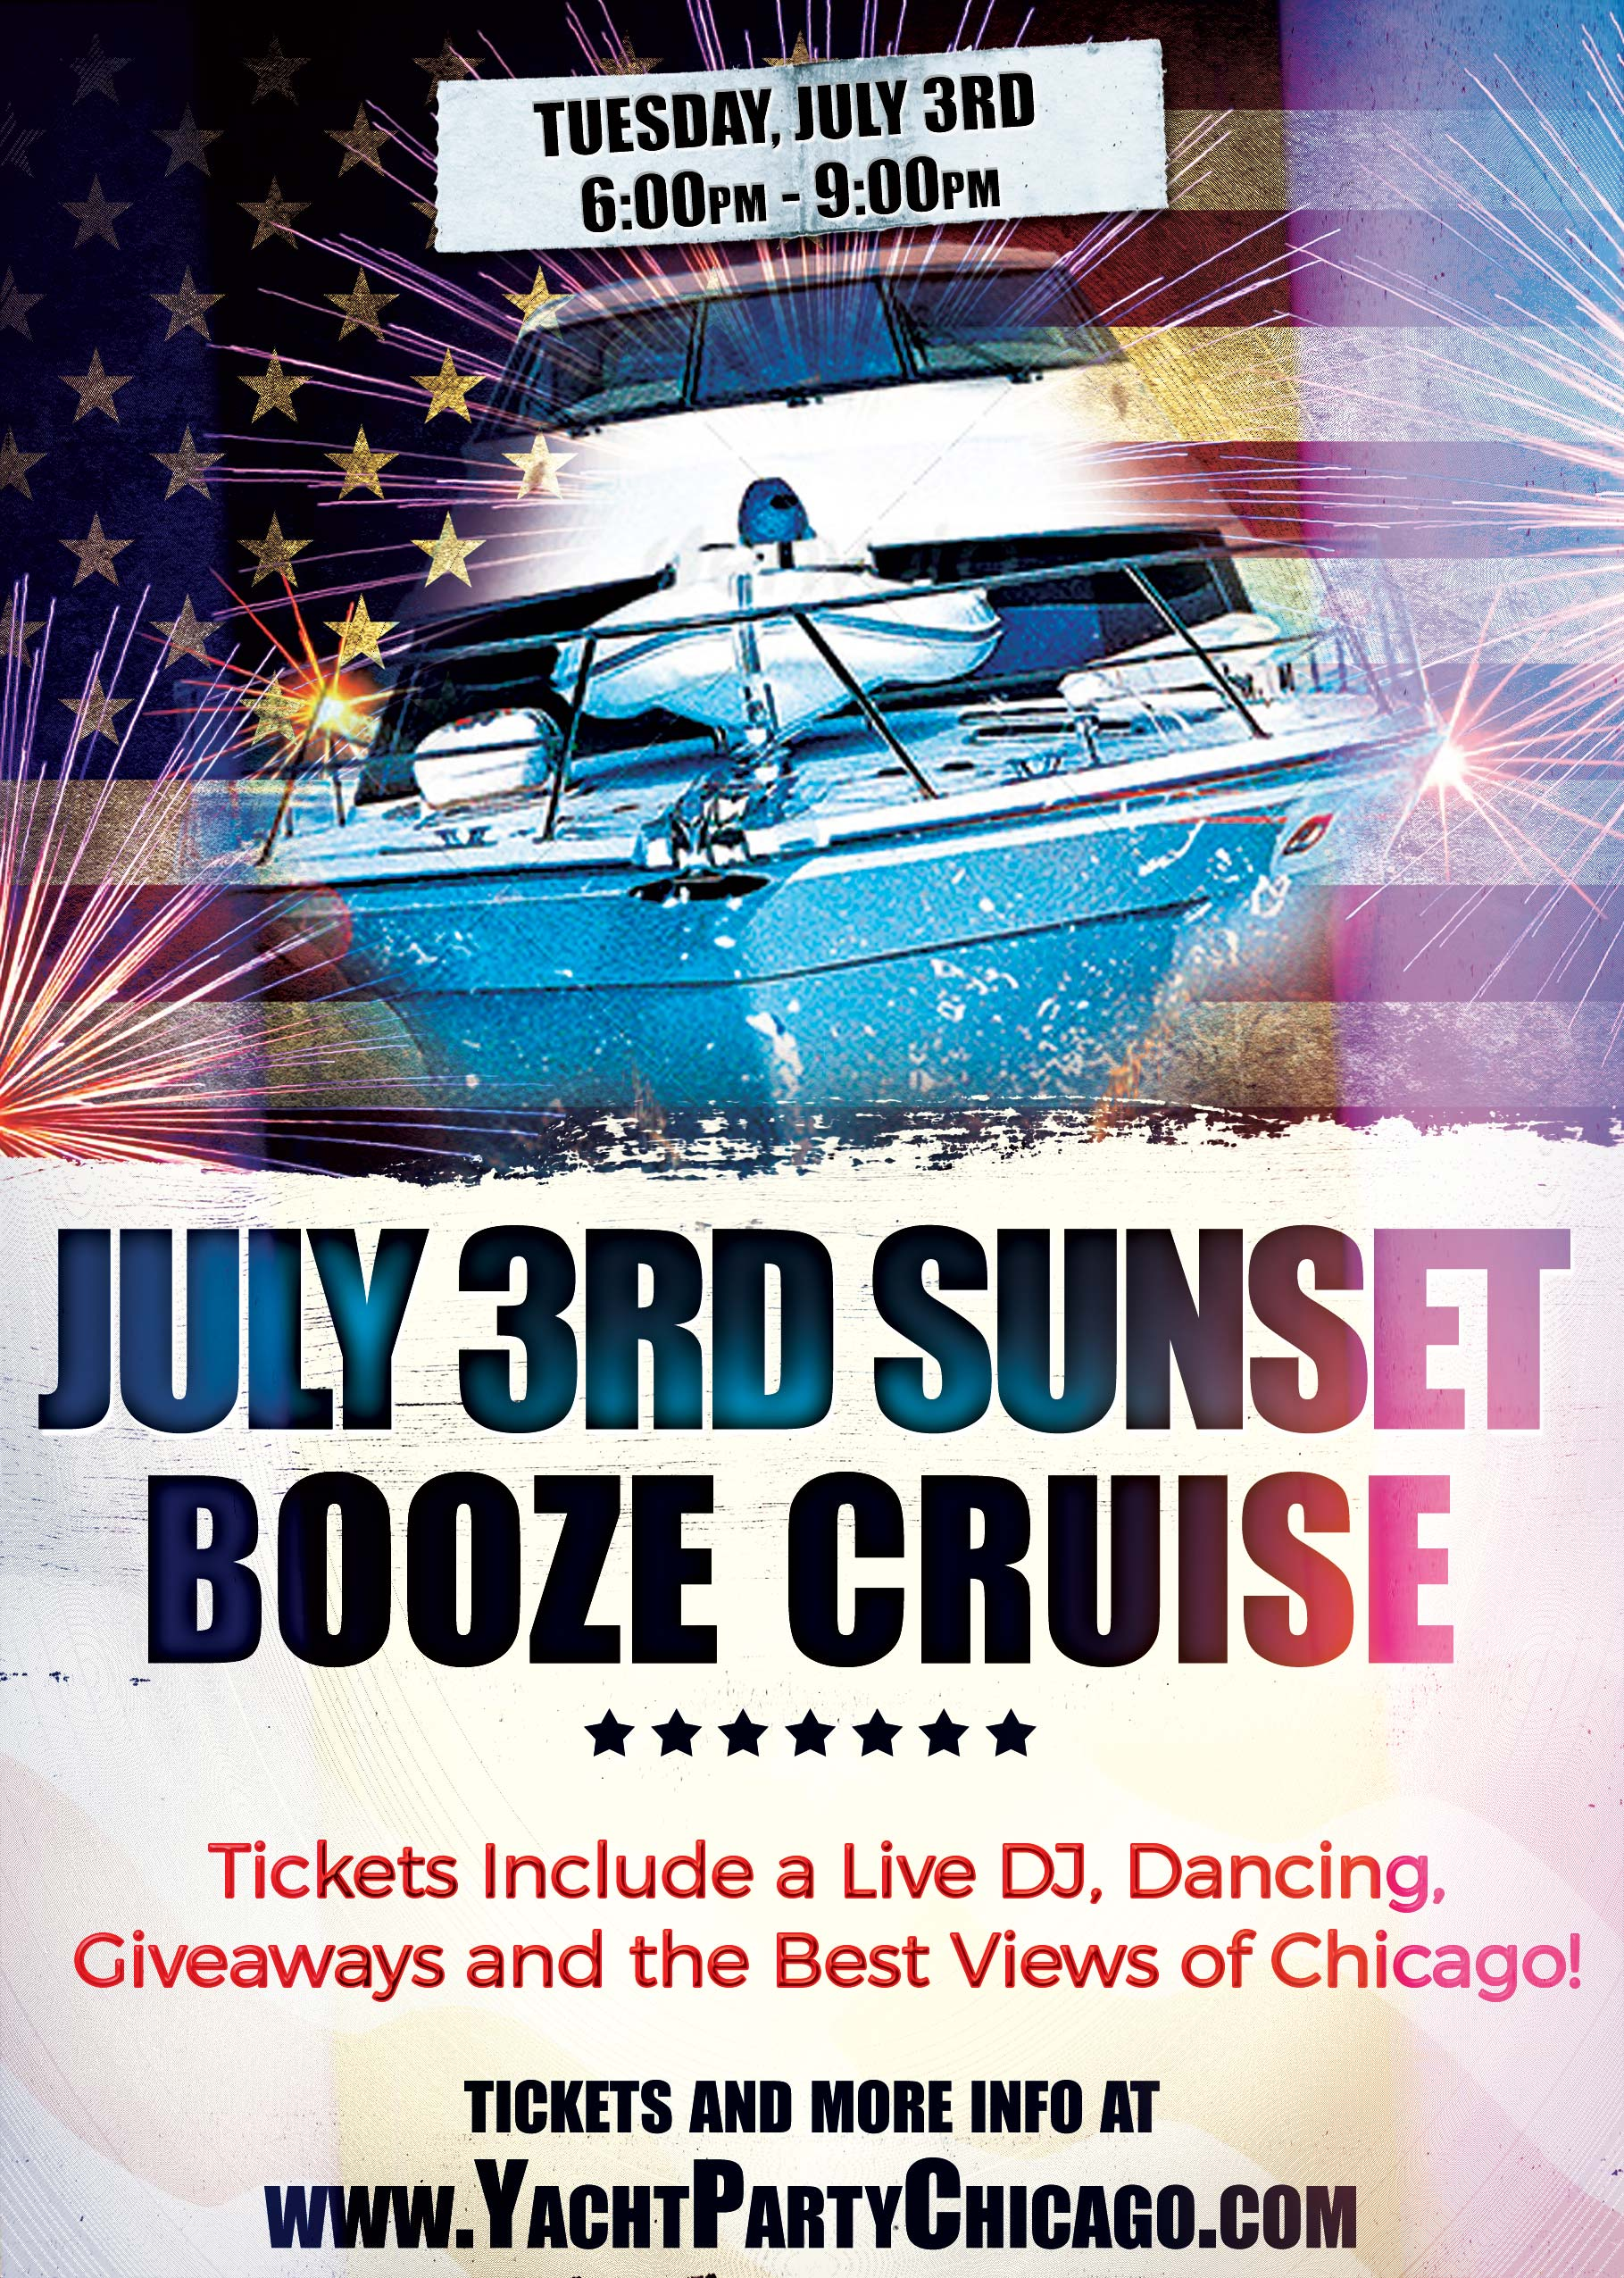 July 3rd Independence Day Party Booze Cruise - Tickets include a Live DJ, Dancing, Giveaways, and the best views of Chicago!